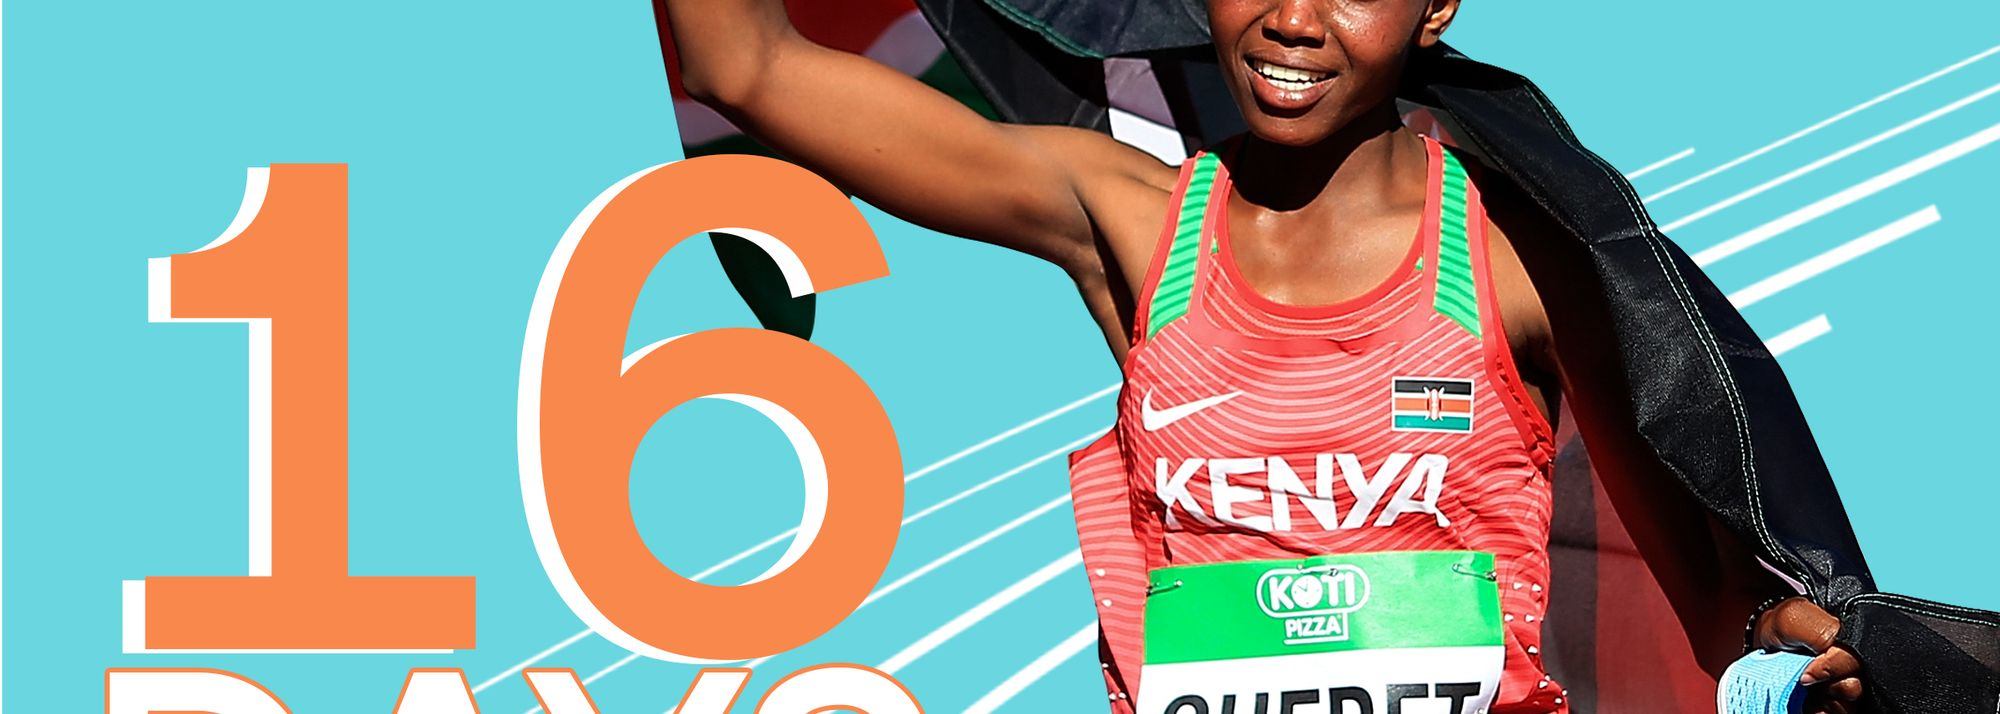 As we head down to the World Athletics Under 20 Championships in 16 days, we commemorate History Sunday by reflecting on Kenya and Ethiopia's decades-long dominance in the middle and long distances.